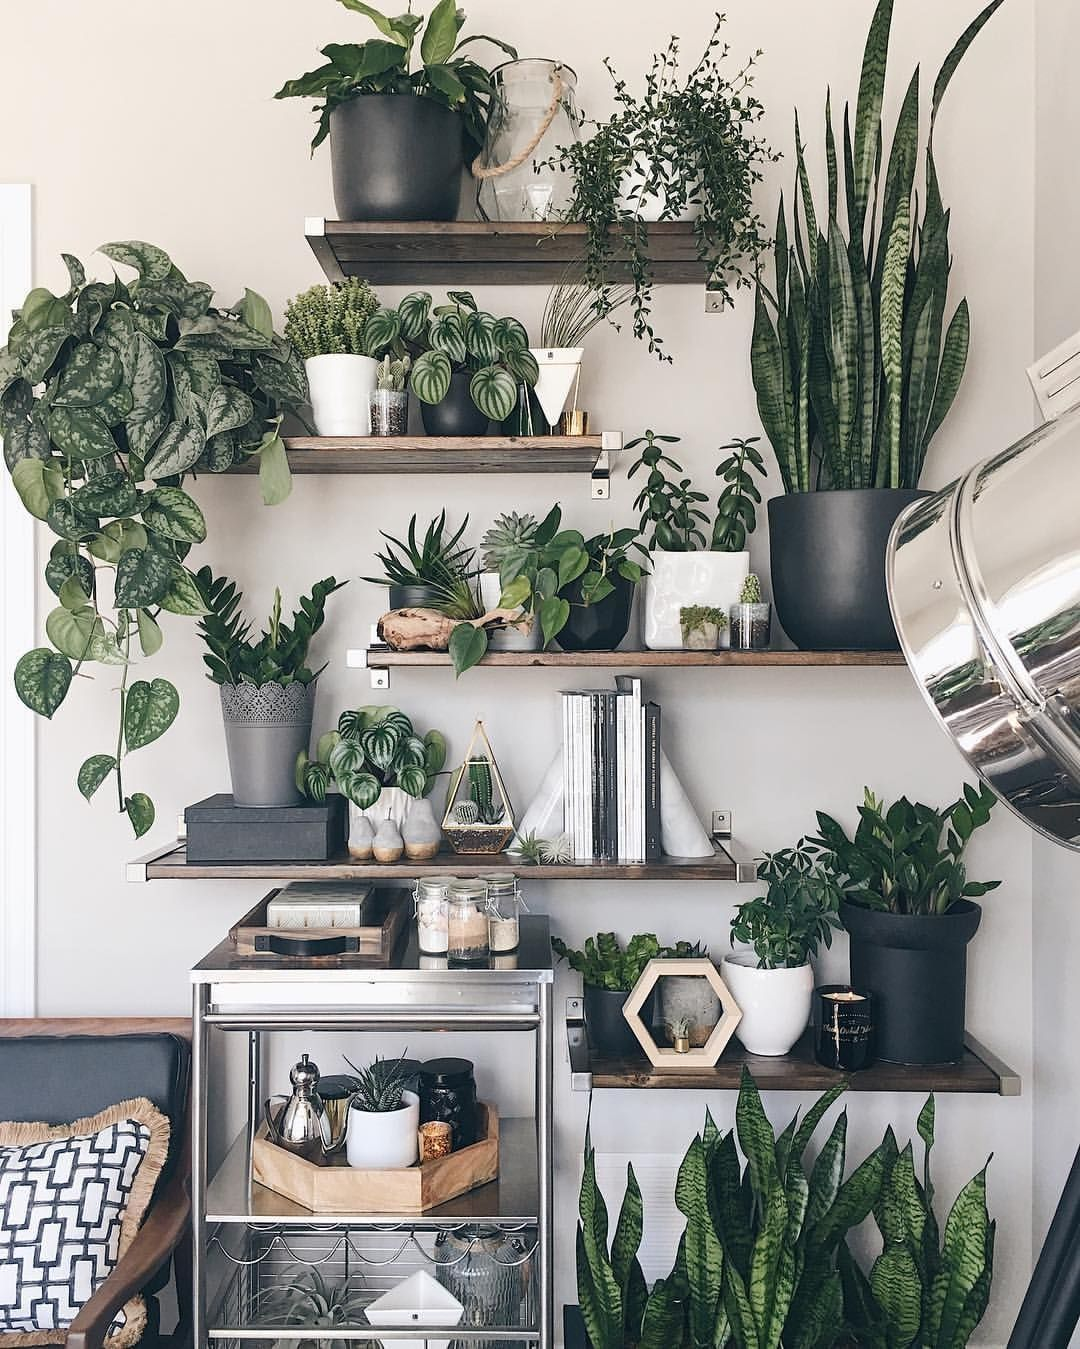 45 Awesome Indoor Garden Ideas In 2020 Plant Decor Indoor Room With Plants Plant Decor